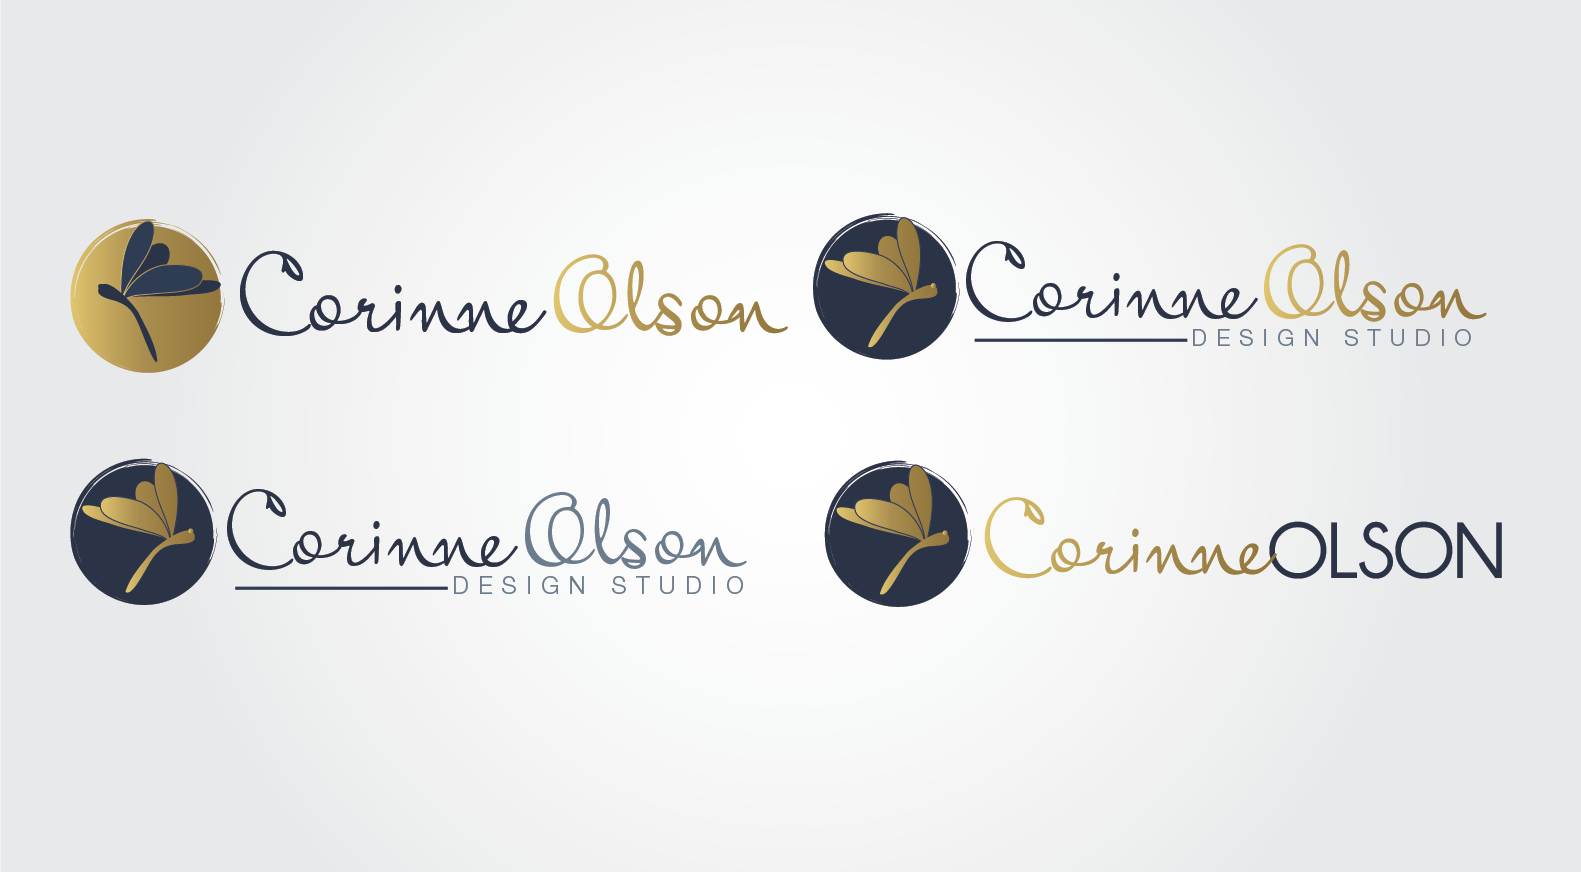 Help Corinne Olson with a new logo